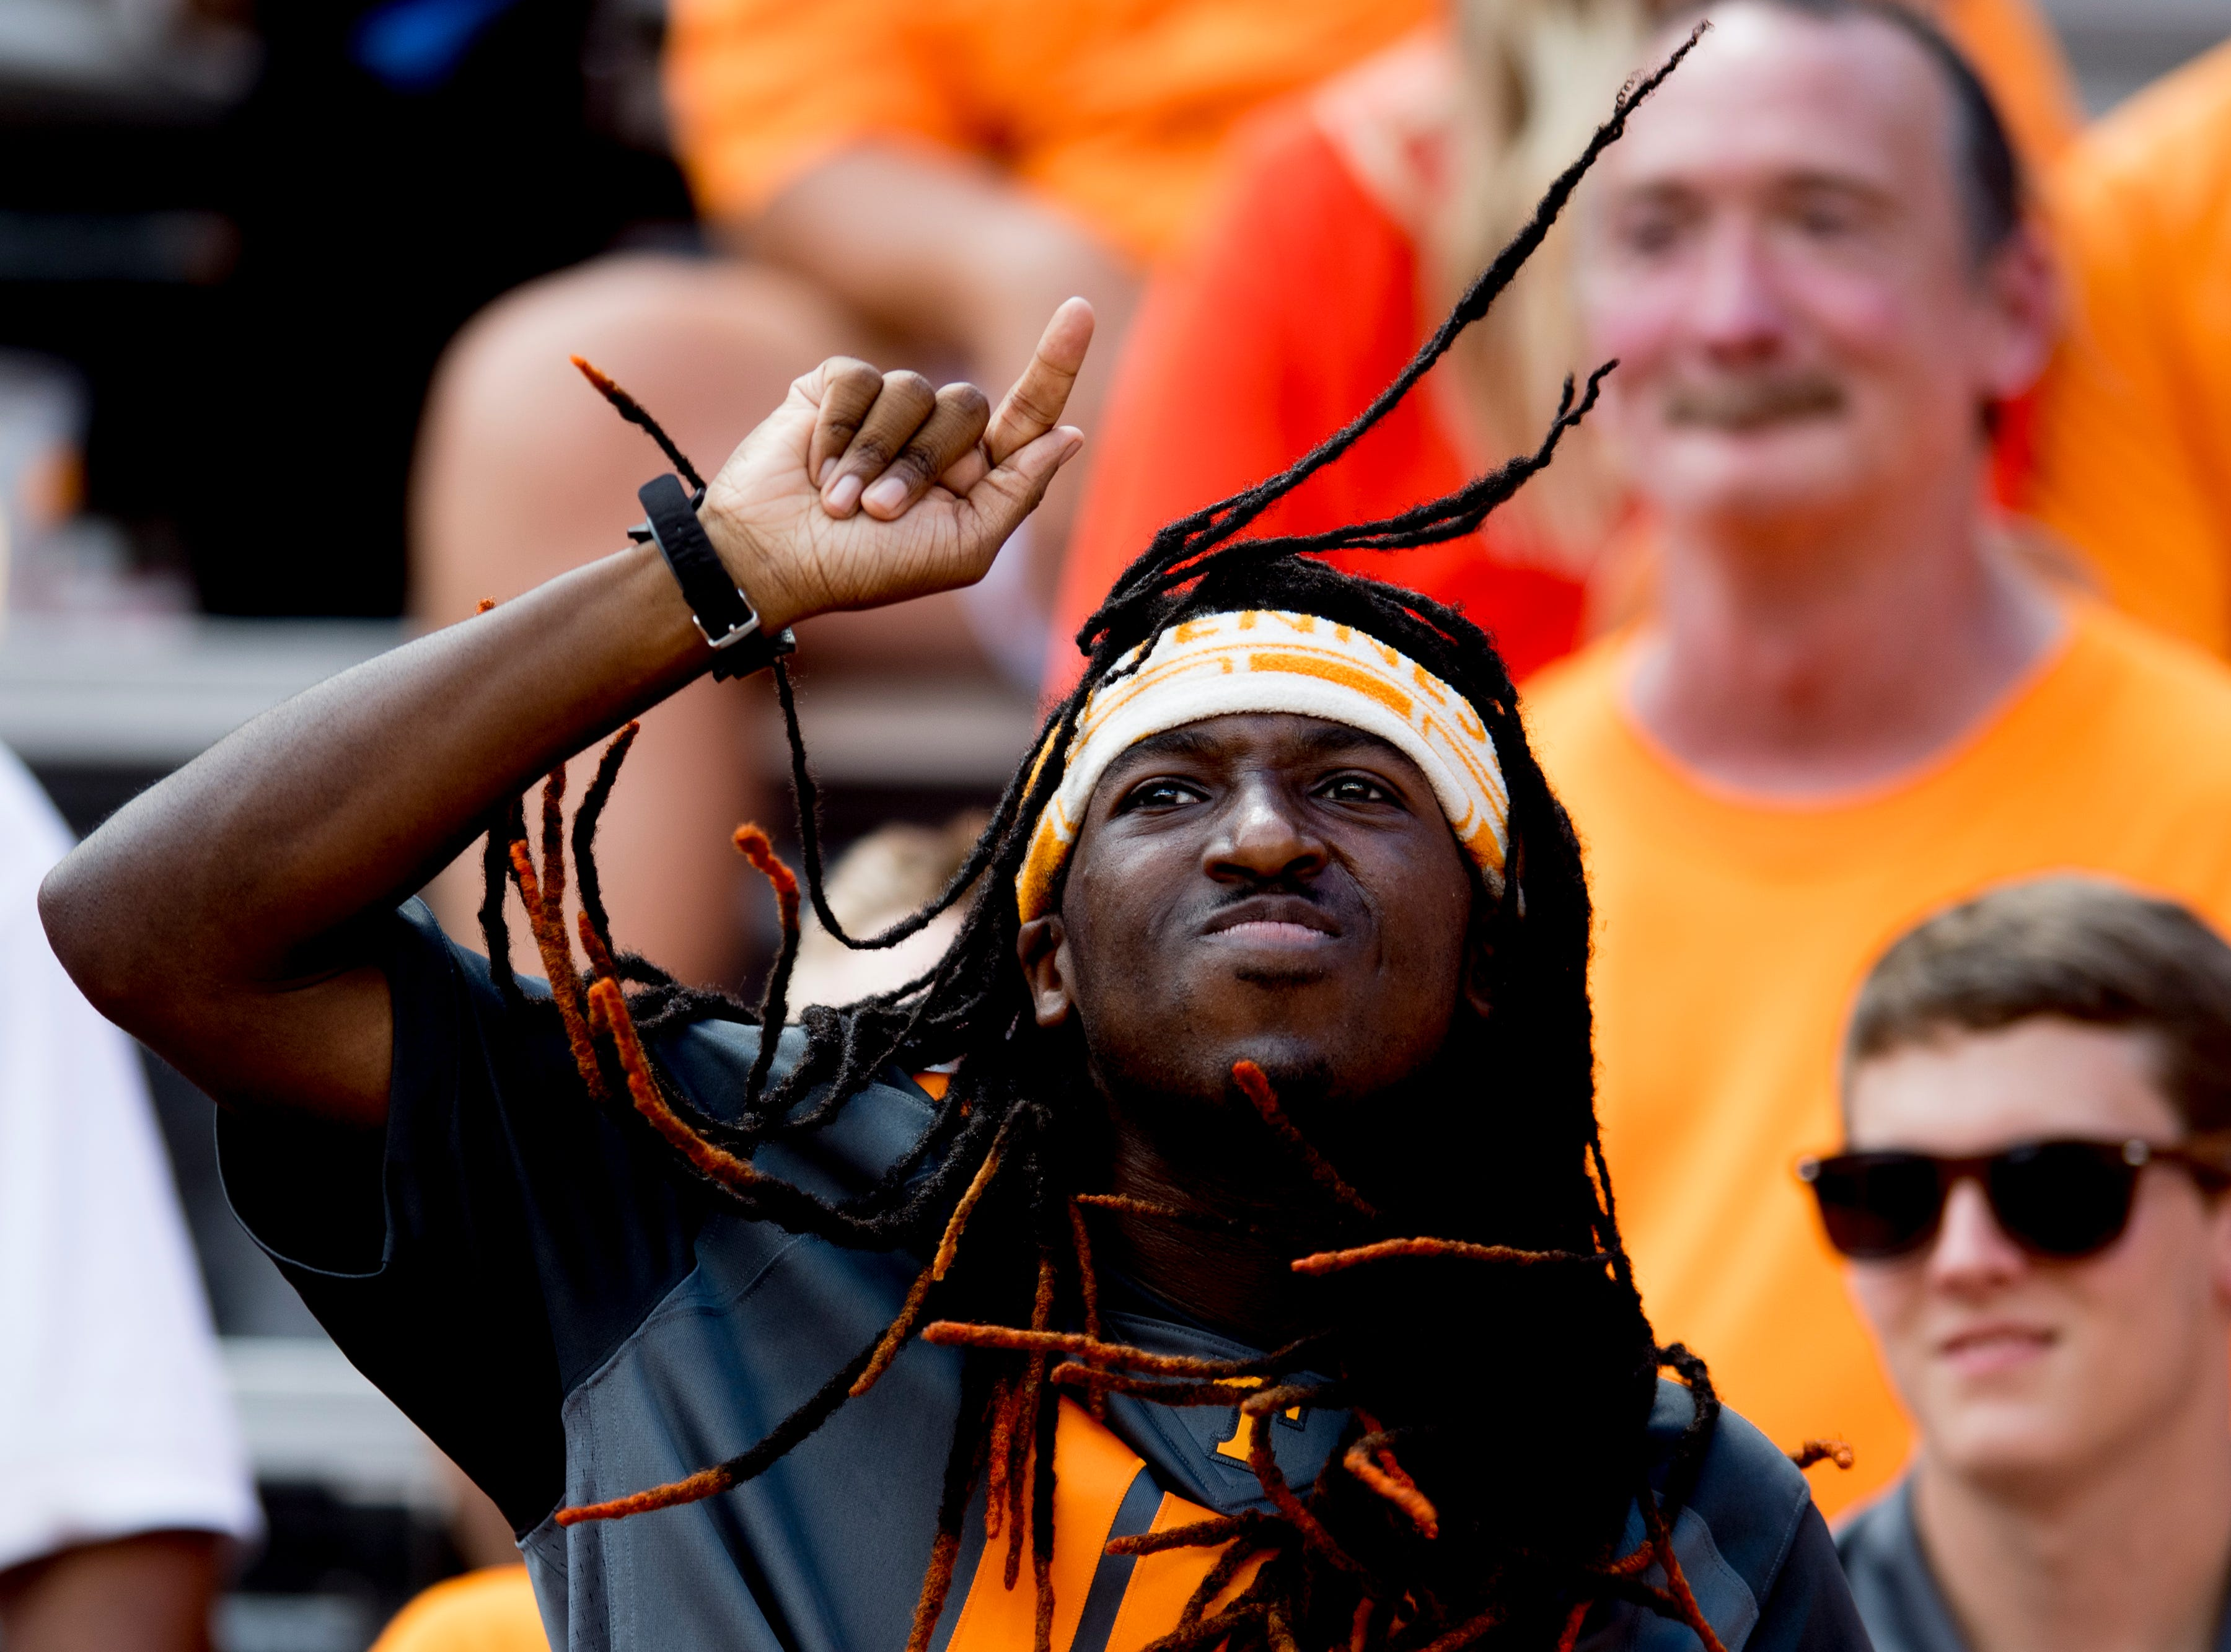 A Vol fan cheers from the stands during a game between Tennessee and UTEP at Neyland Stadium in Knoxville, Tennessee on Saturday, September 15, 2018.